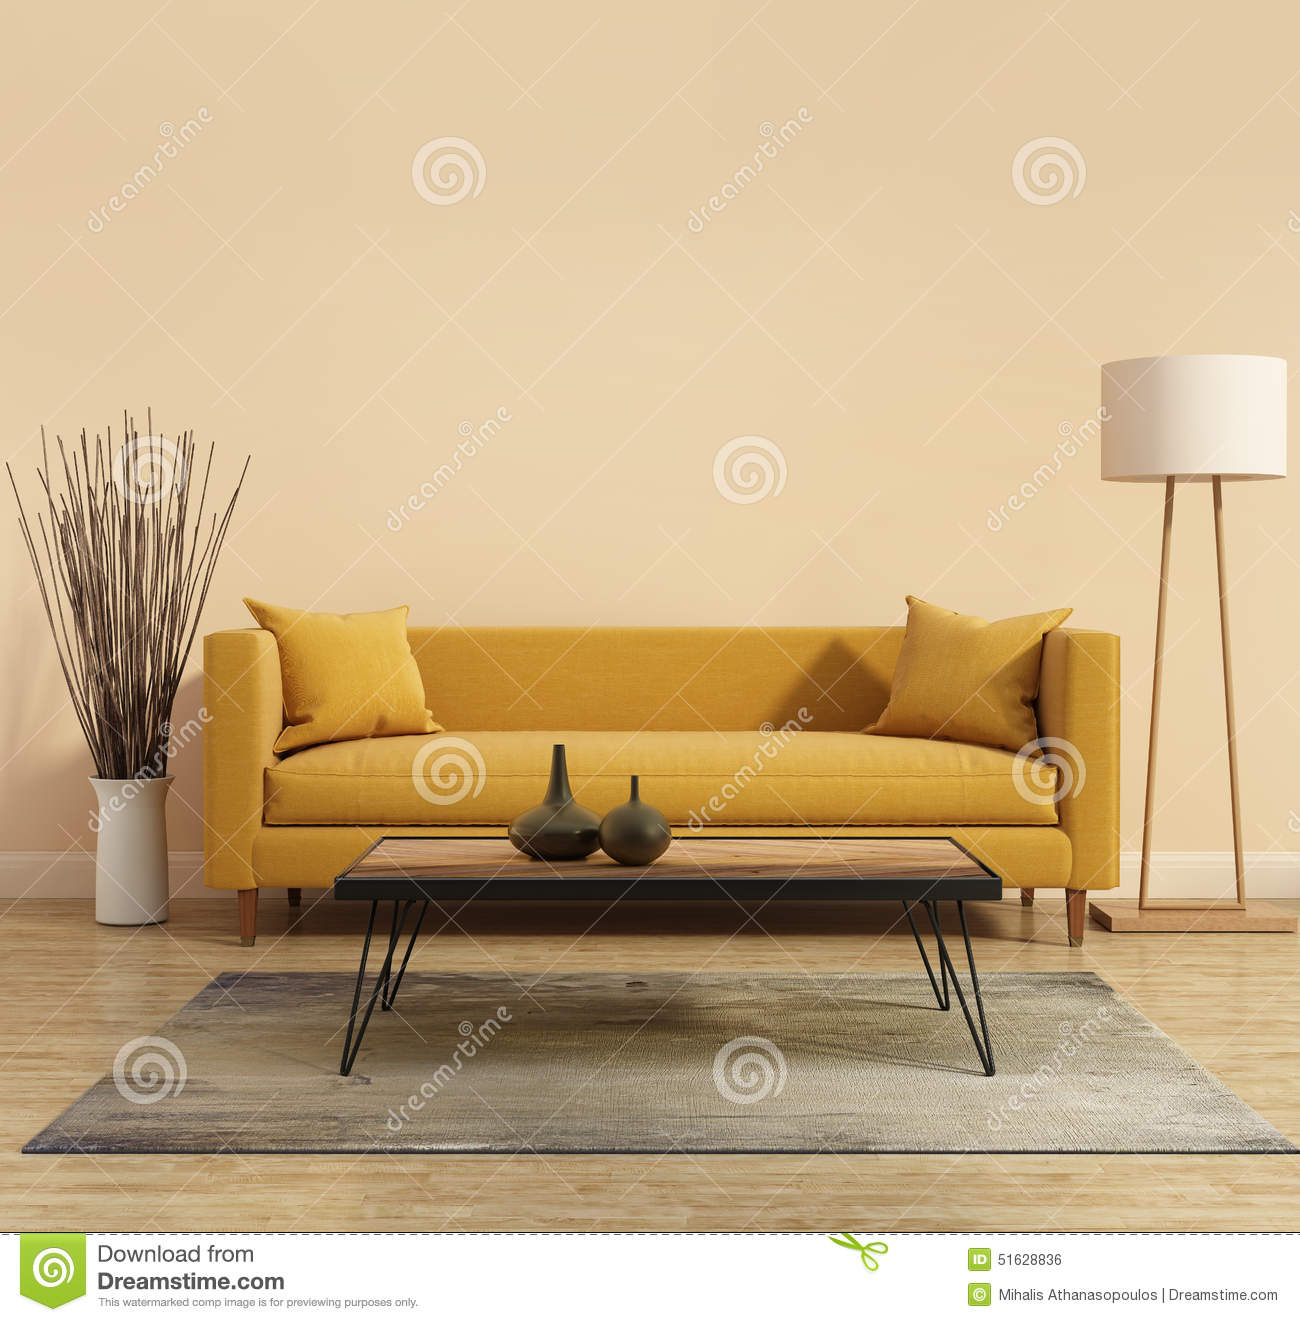 modern modern interior with a yellow sofa in the living room with a